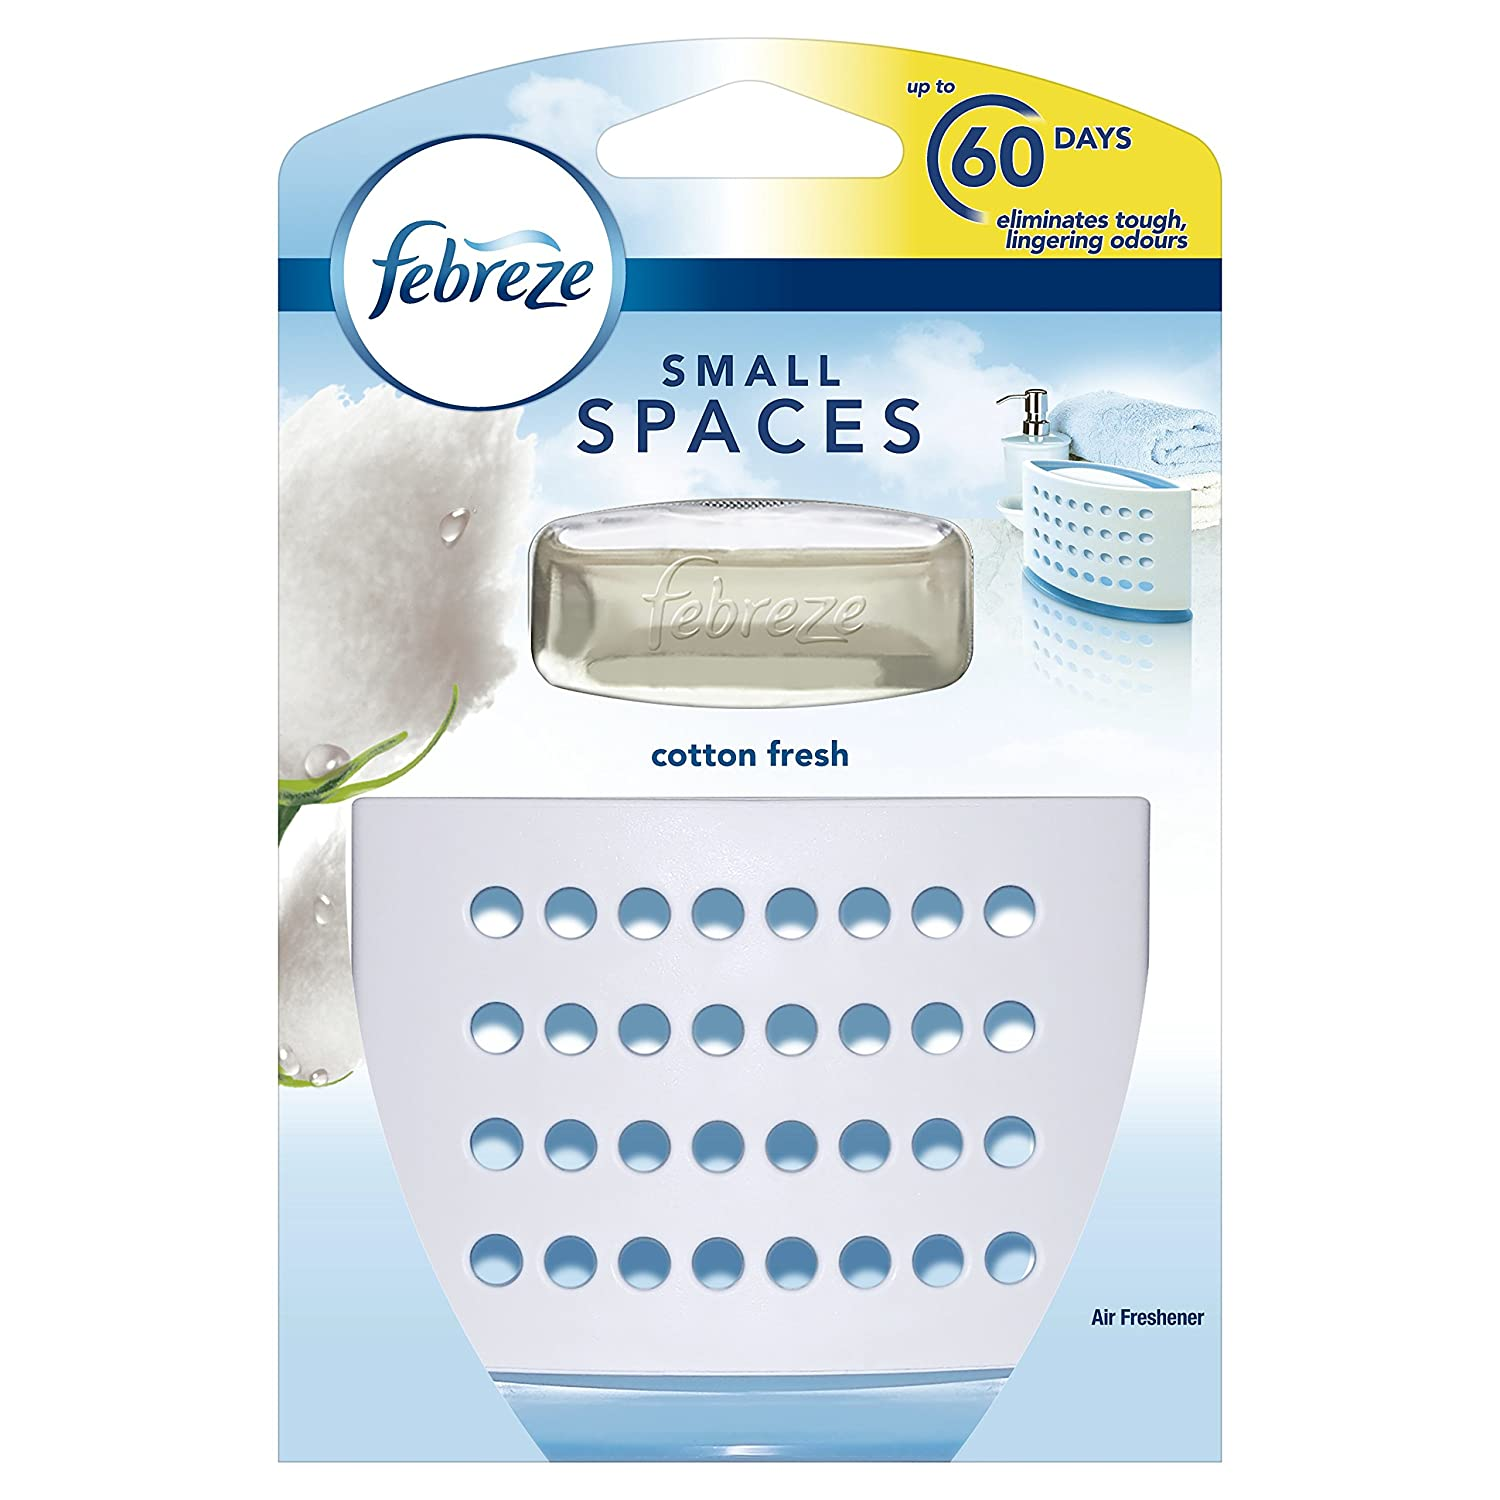 Febreze Small Spaces Air Freshener Cotton Fresh Starter Kit, 5.5 ml, Pack of 7 Procter & Gamble 81409247